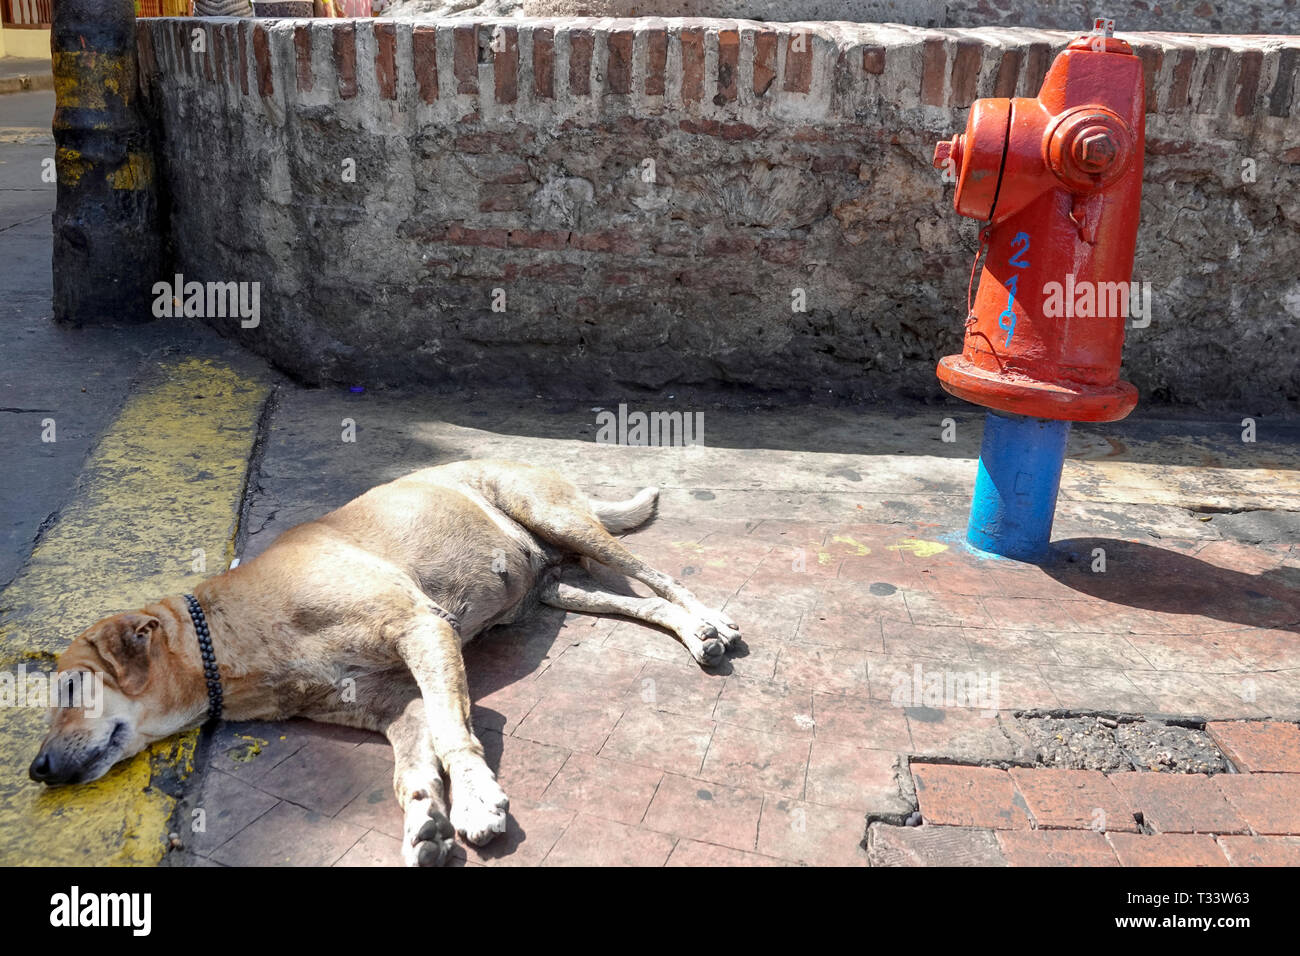 Cartagena Colombia Old Walled City Center centre Getsemani dog sleeping by fire hydrant - Stock Image